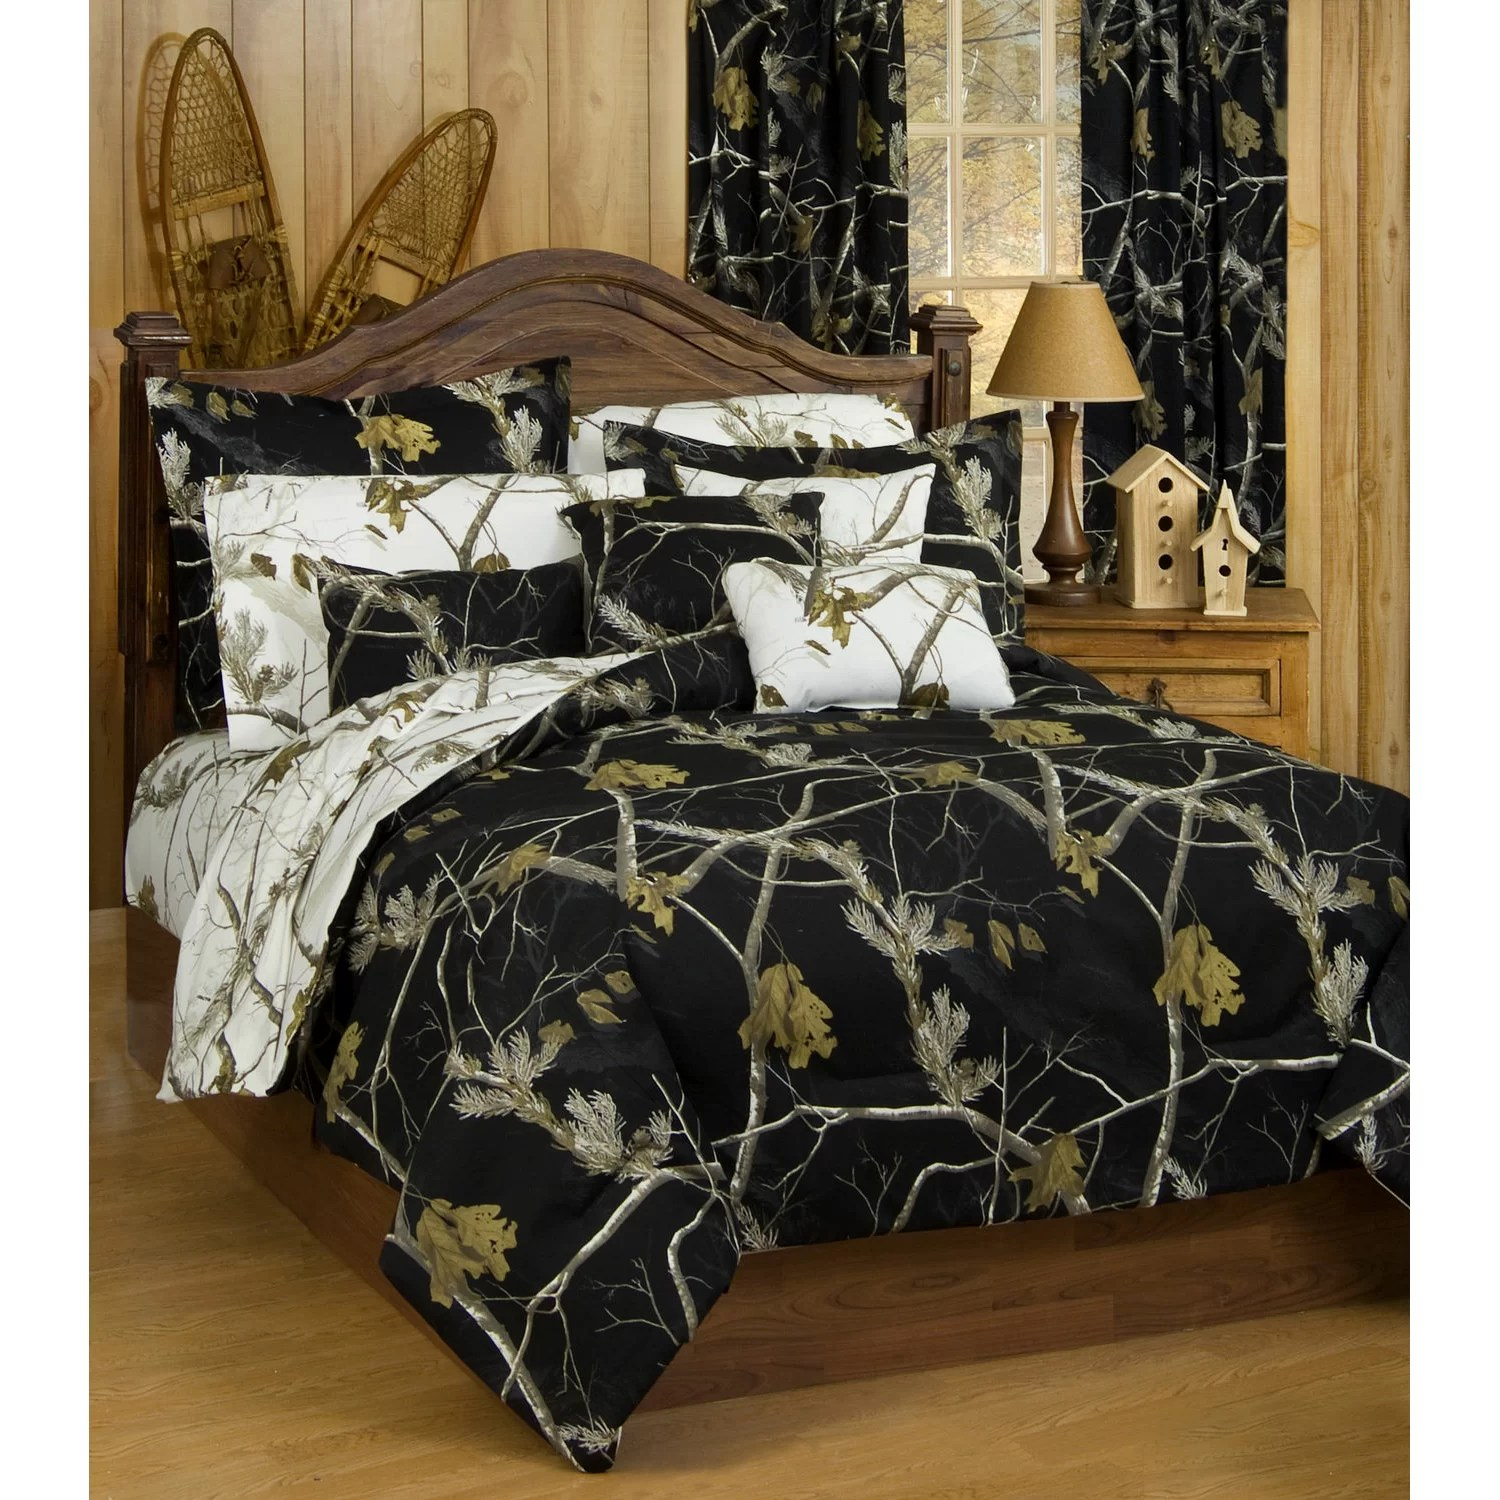 Realtree Camo Comforter Collection & Reviews